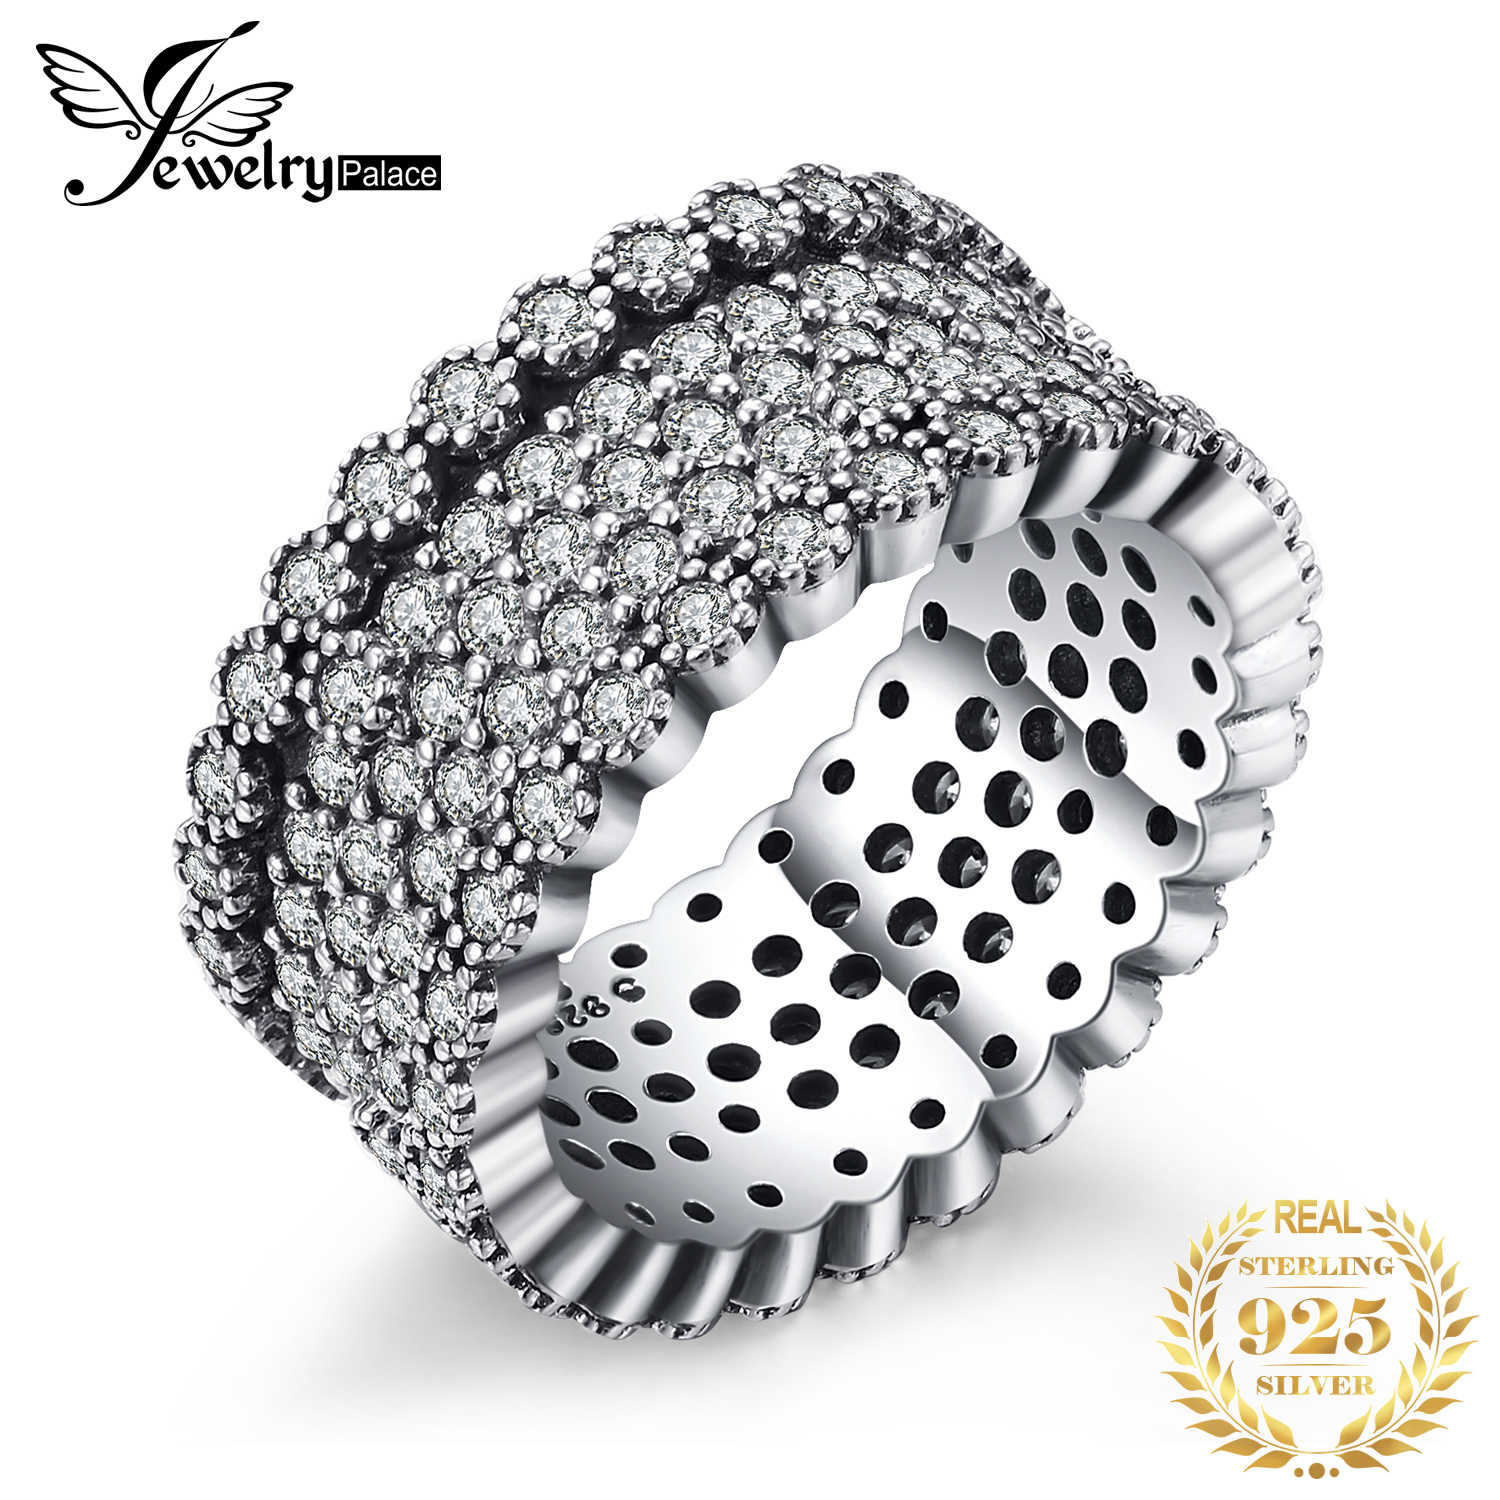 Jewelrypalace 925 Sterling Silver lavish Shimmering Cocktail Ring For Women New Hot Sale As The Best Gifts